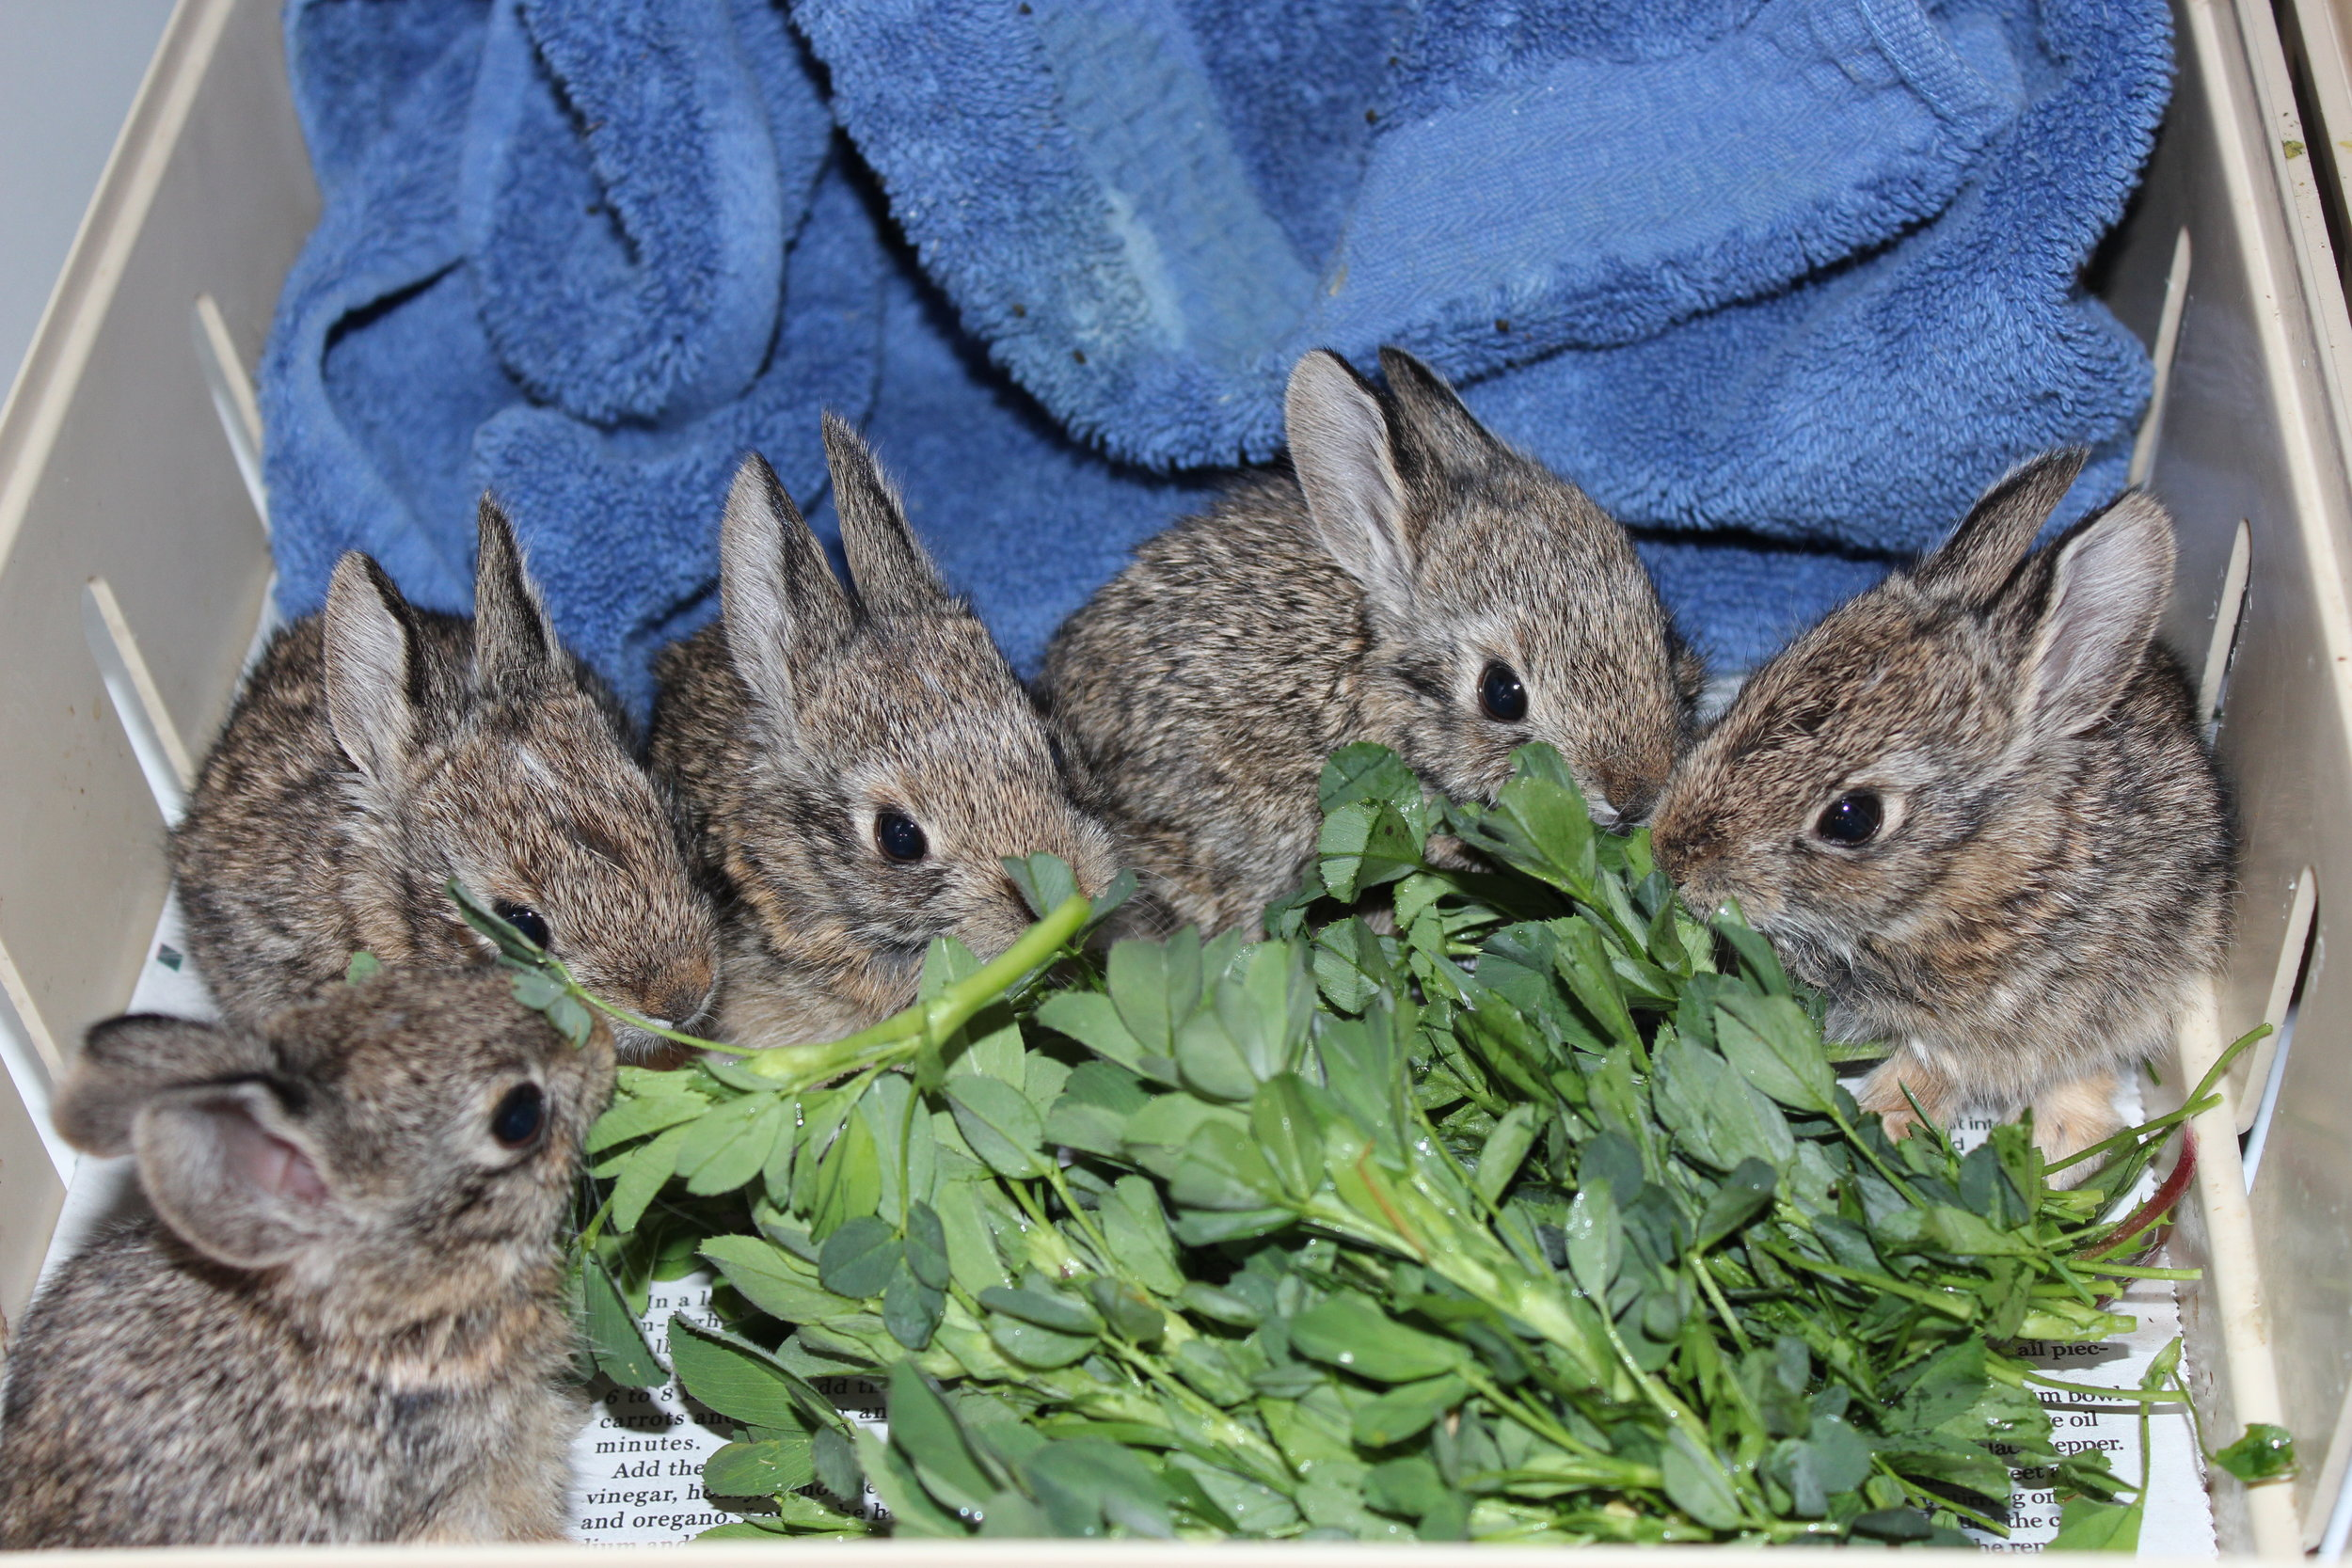 We're Fine! - Though they are still small (about the size of a tennis ball), these baby rabbits are old enough to care for themselves. Their eyes are open, and they have fluffy hair. If found in the wild, it's best to leave them alone!